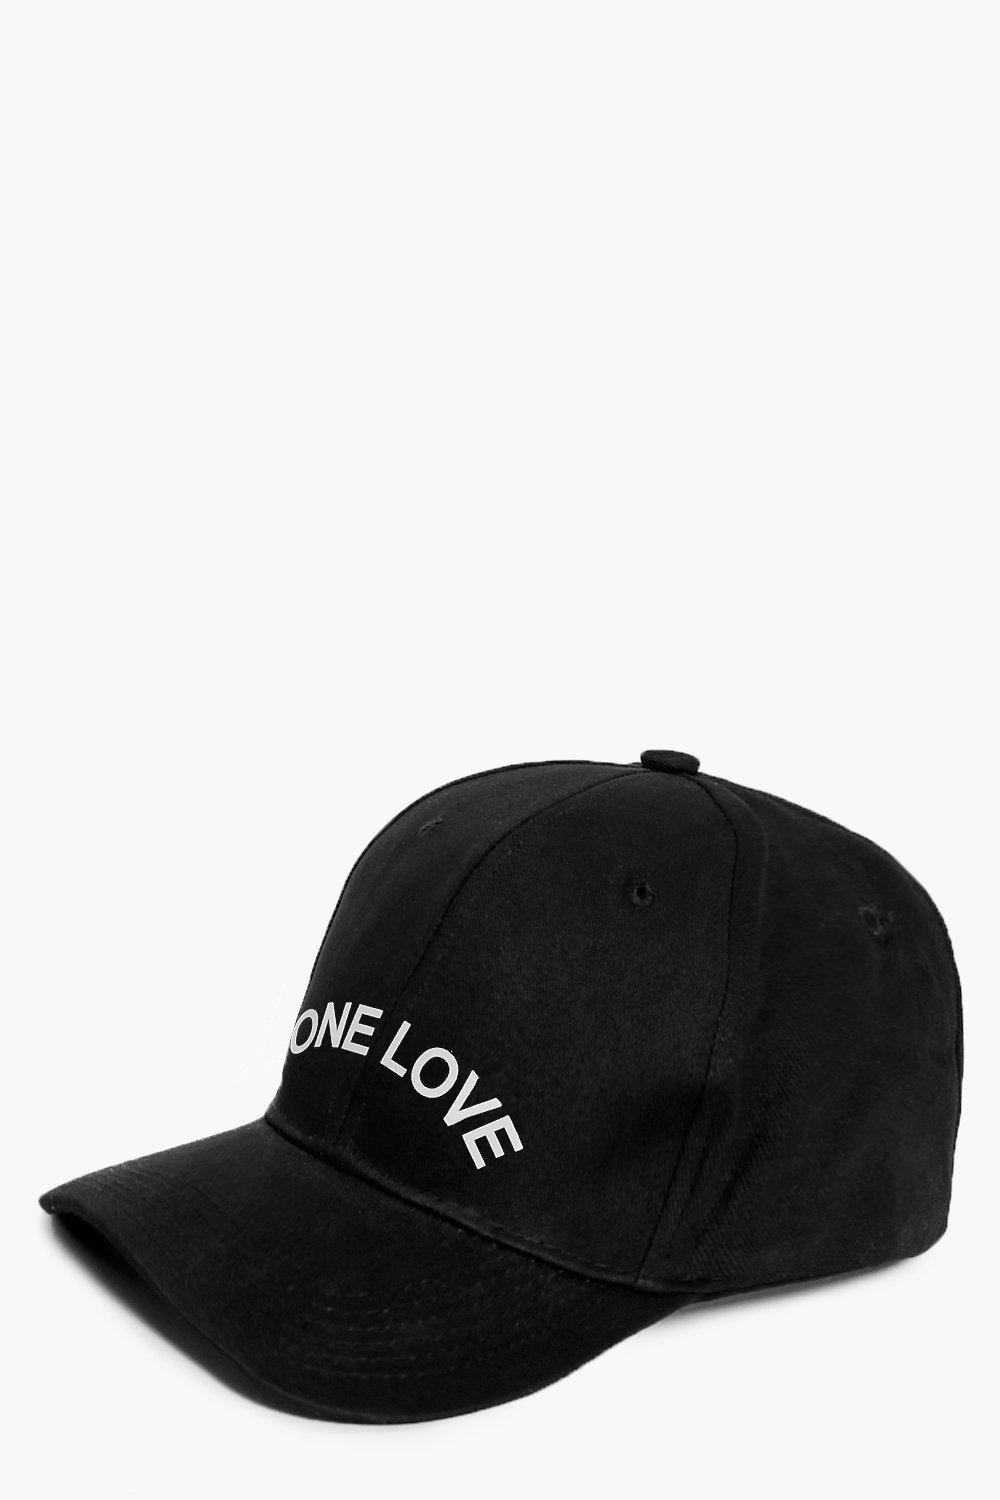 Cap - One Love - black - Charity Cap - One Love -